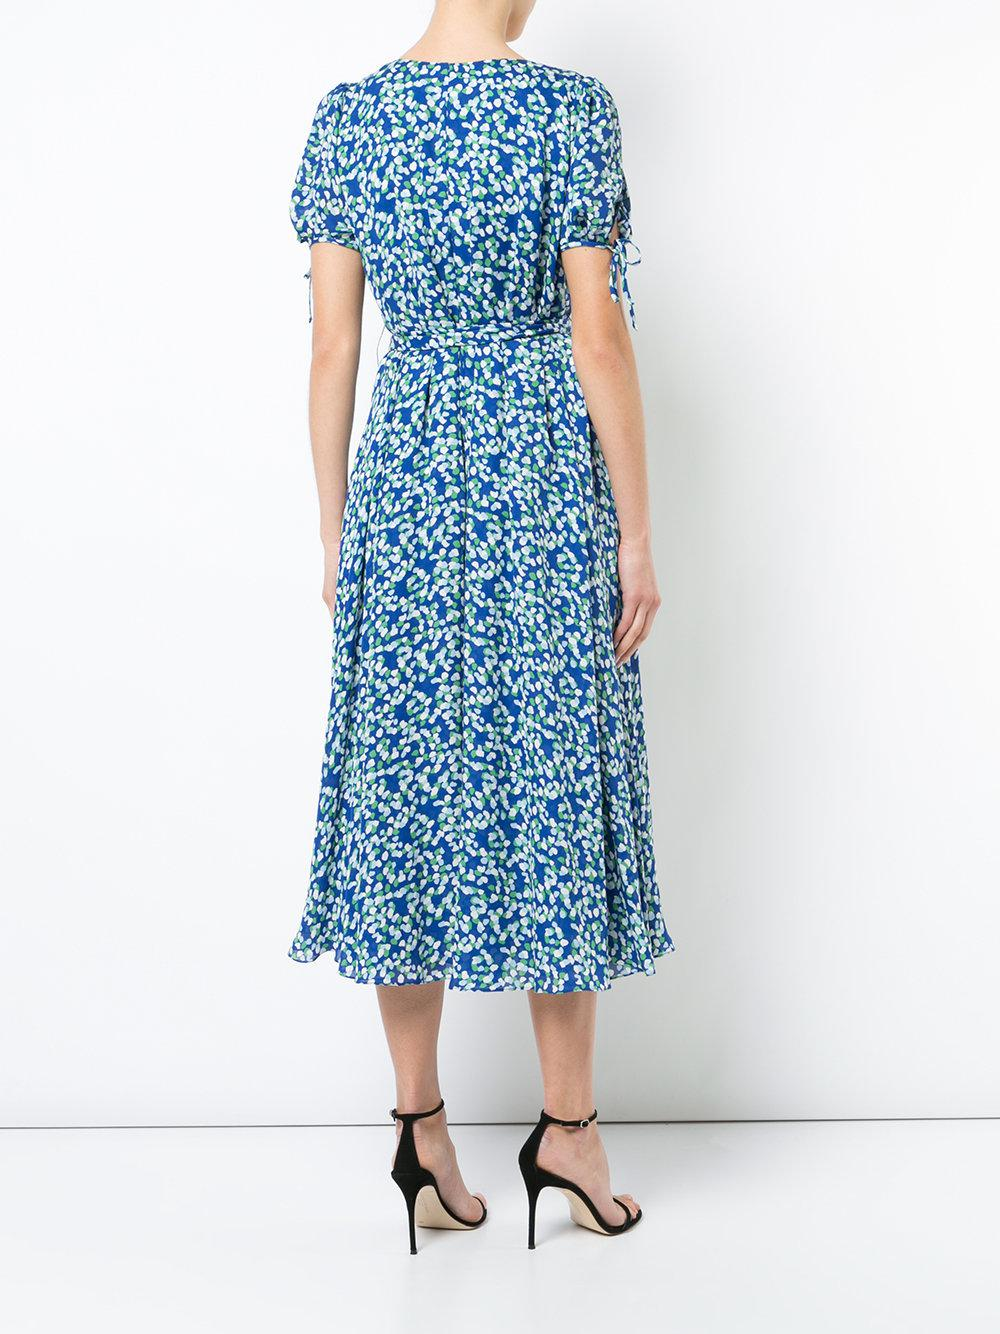 V-neck midi dress - Blue Carolina Herrera Deals For Sale Cheap Sale Good Selling Extremely Best Seller Cheap Price Footaction Online n04m0u